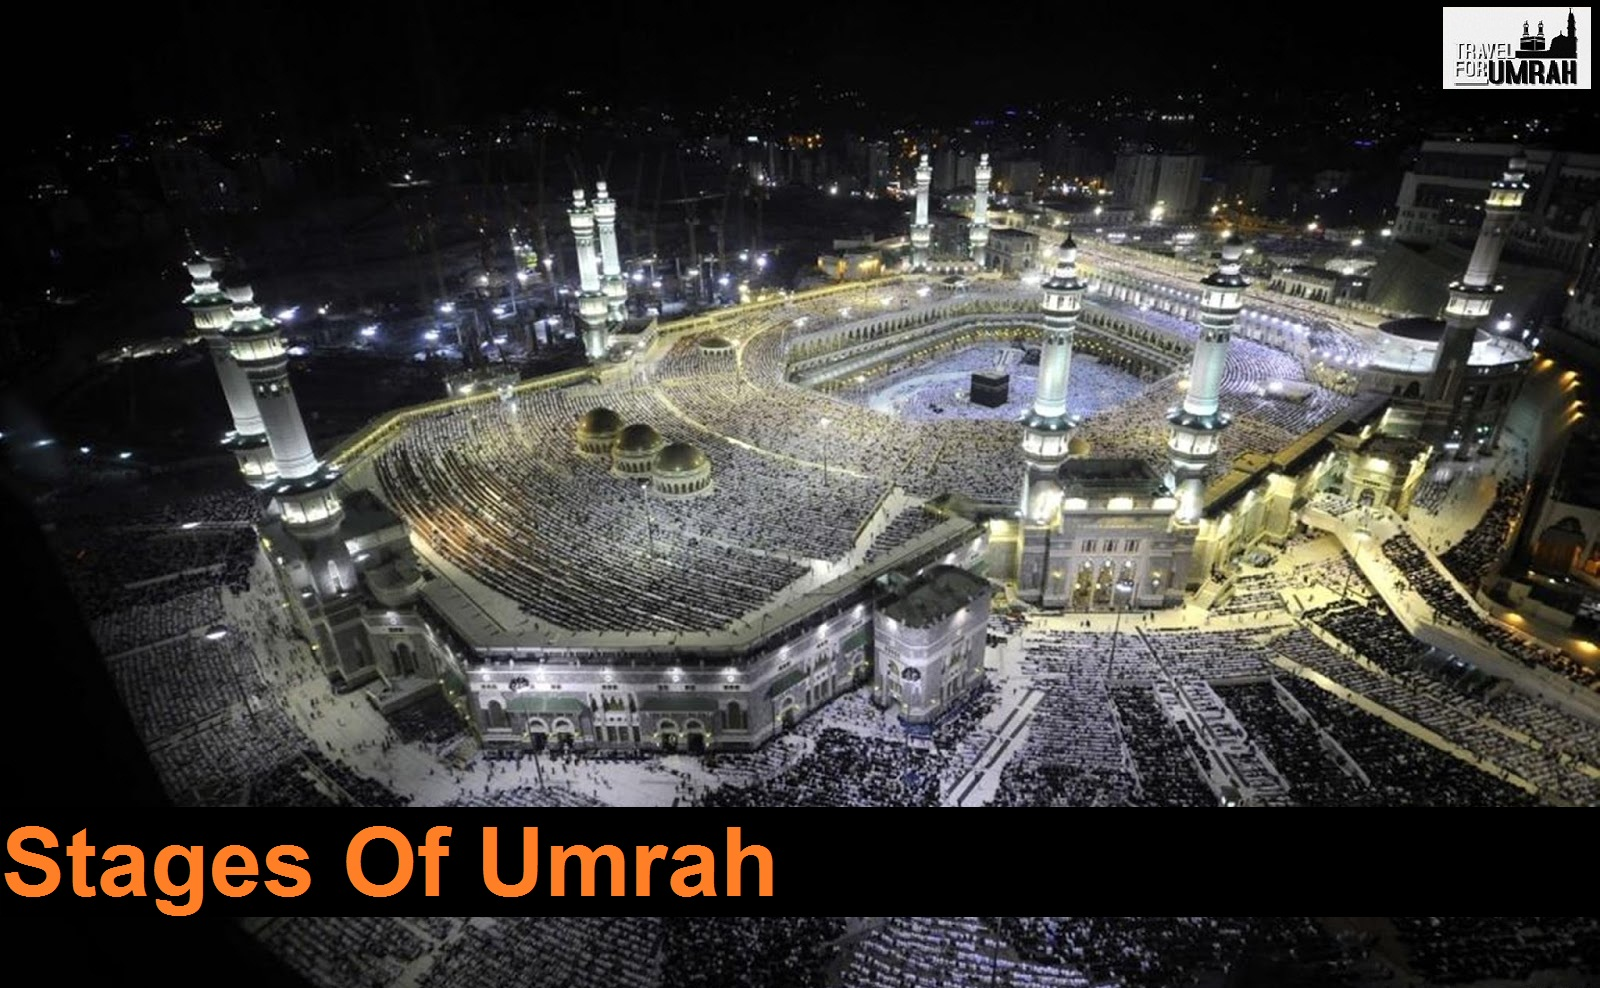 Stages of umrah travel for umrah stages of umrah solutioingenieria Gallery